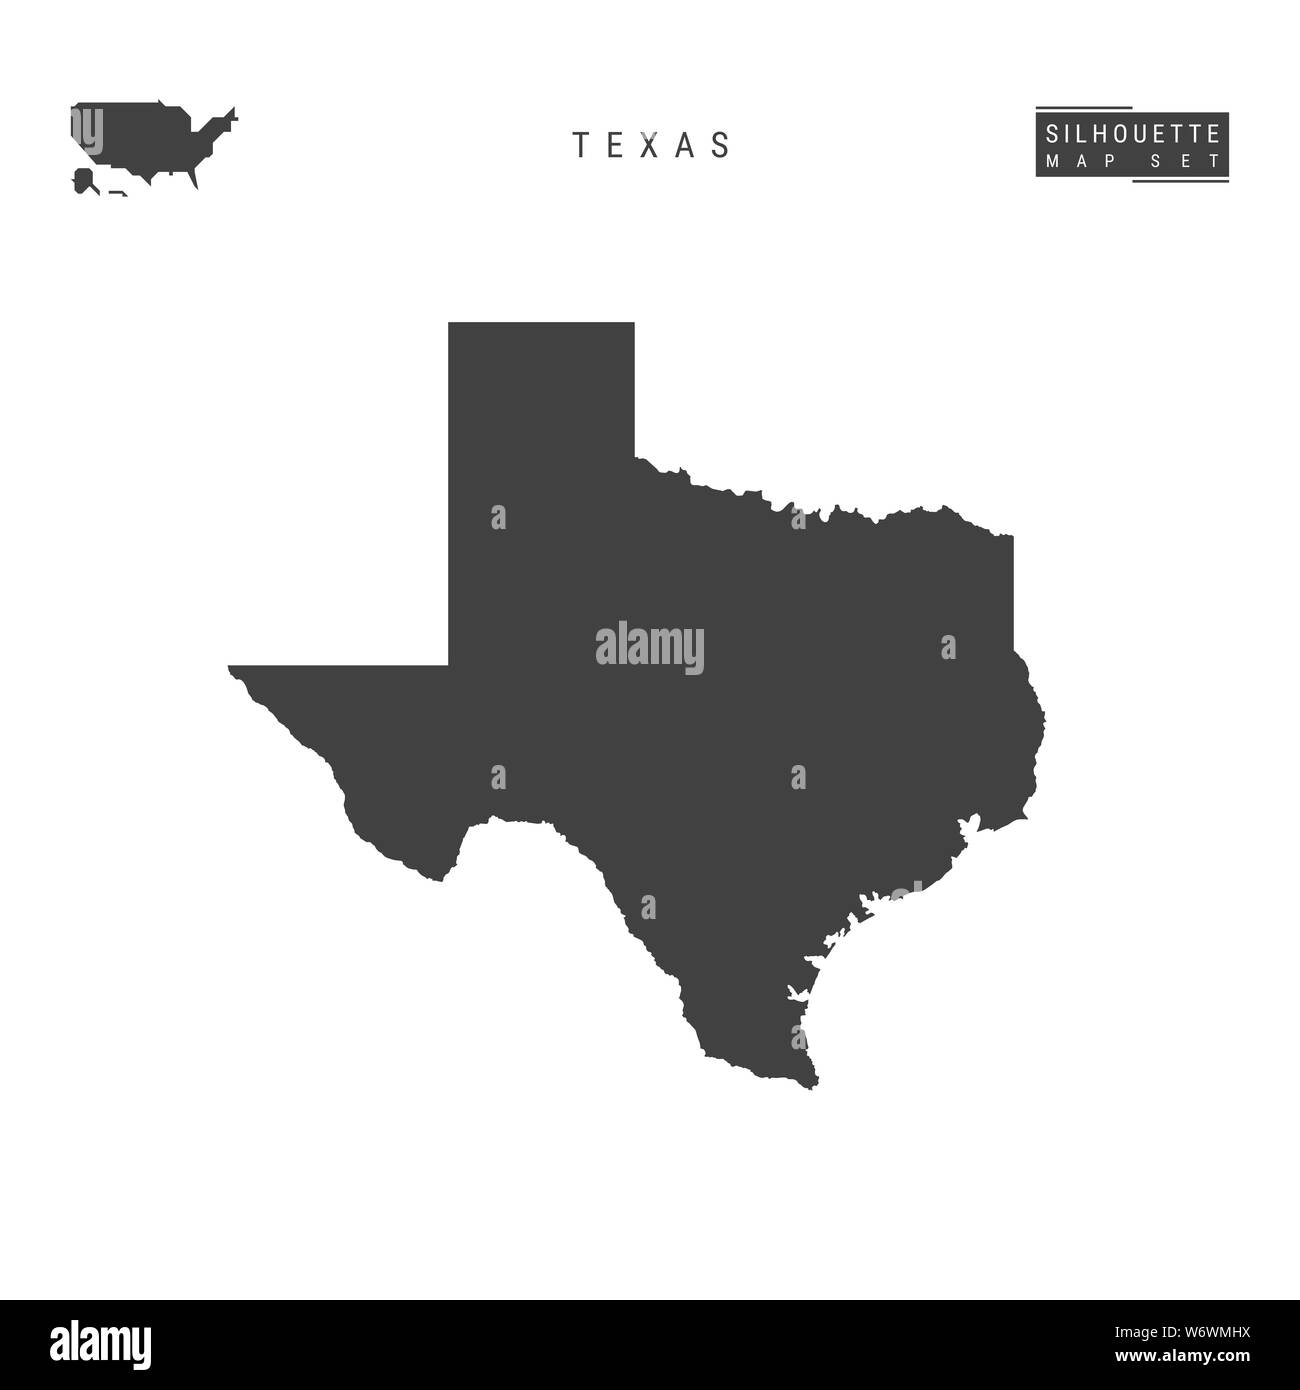 Texas Us State Blank Map Isolated On White Background High Detailed Black Silhouette Map Of Texas Stock Photo Alamy